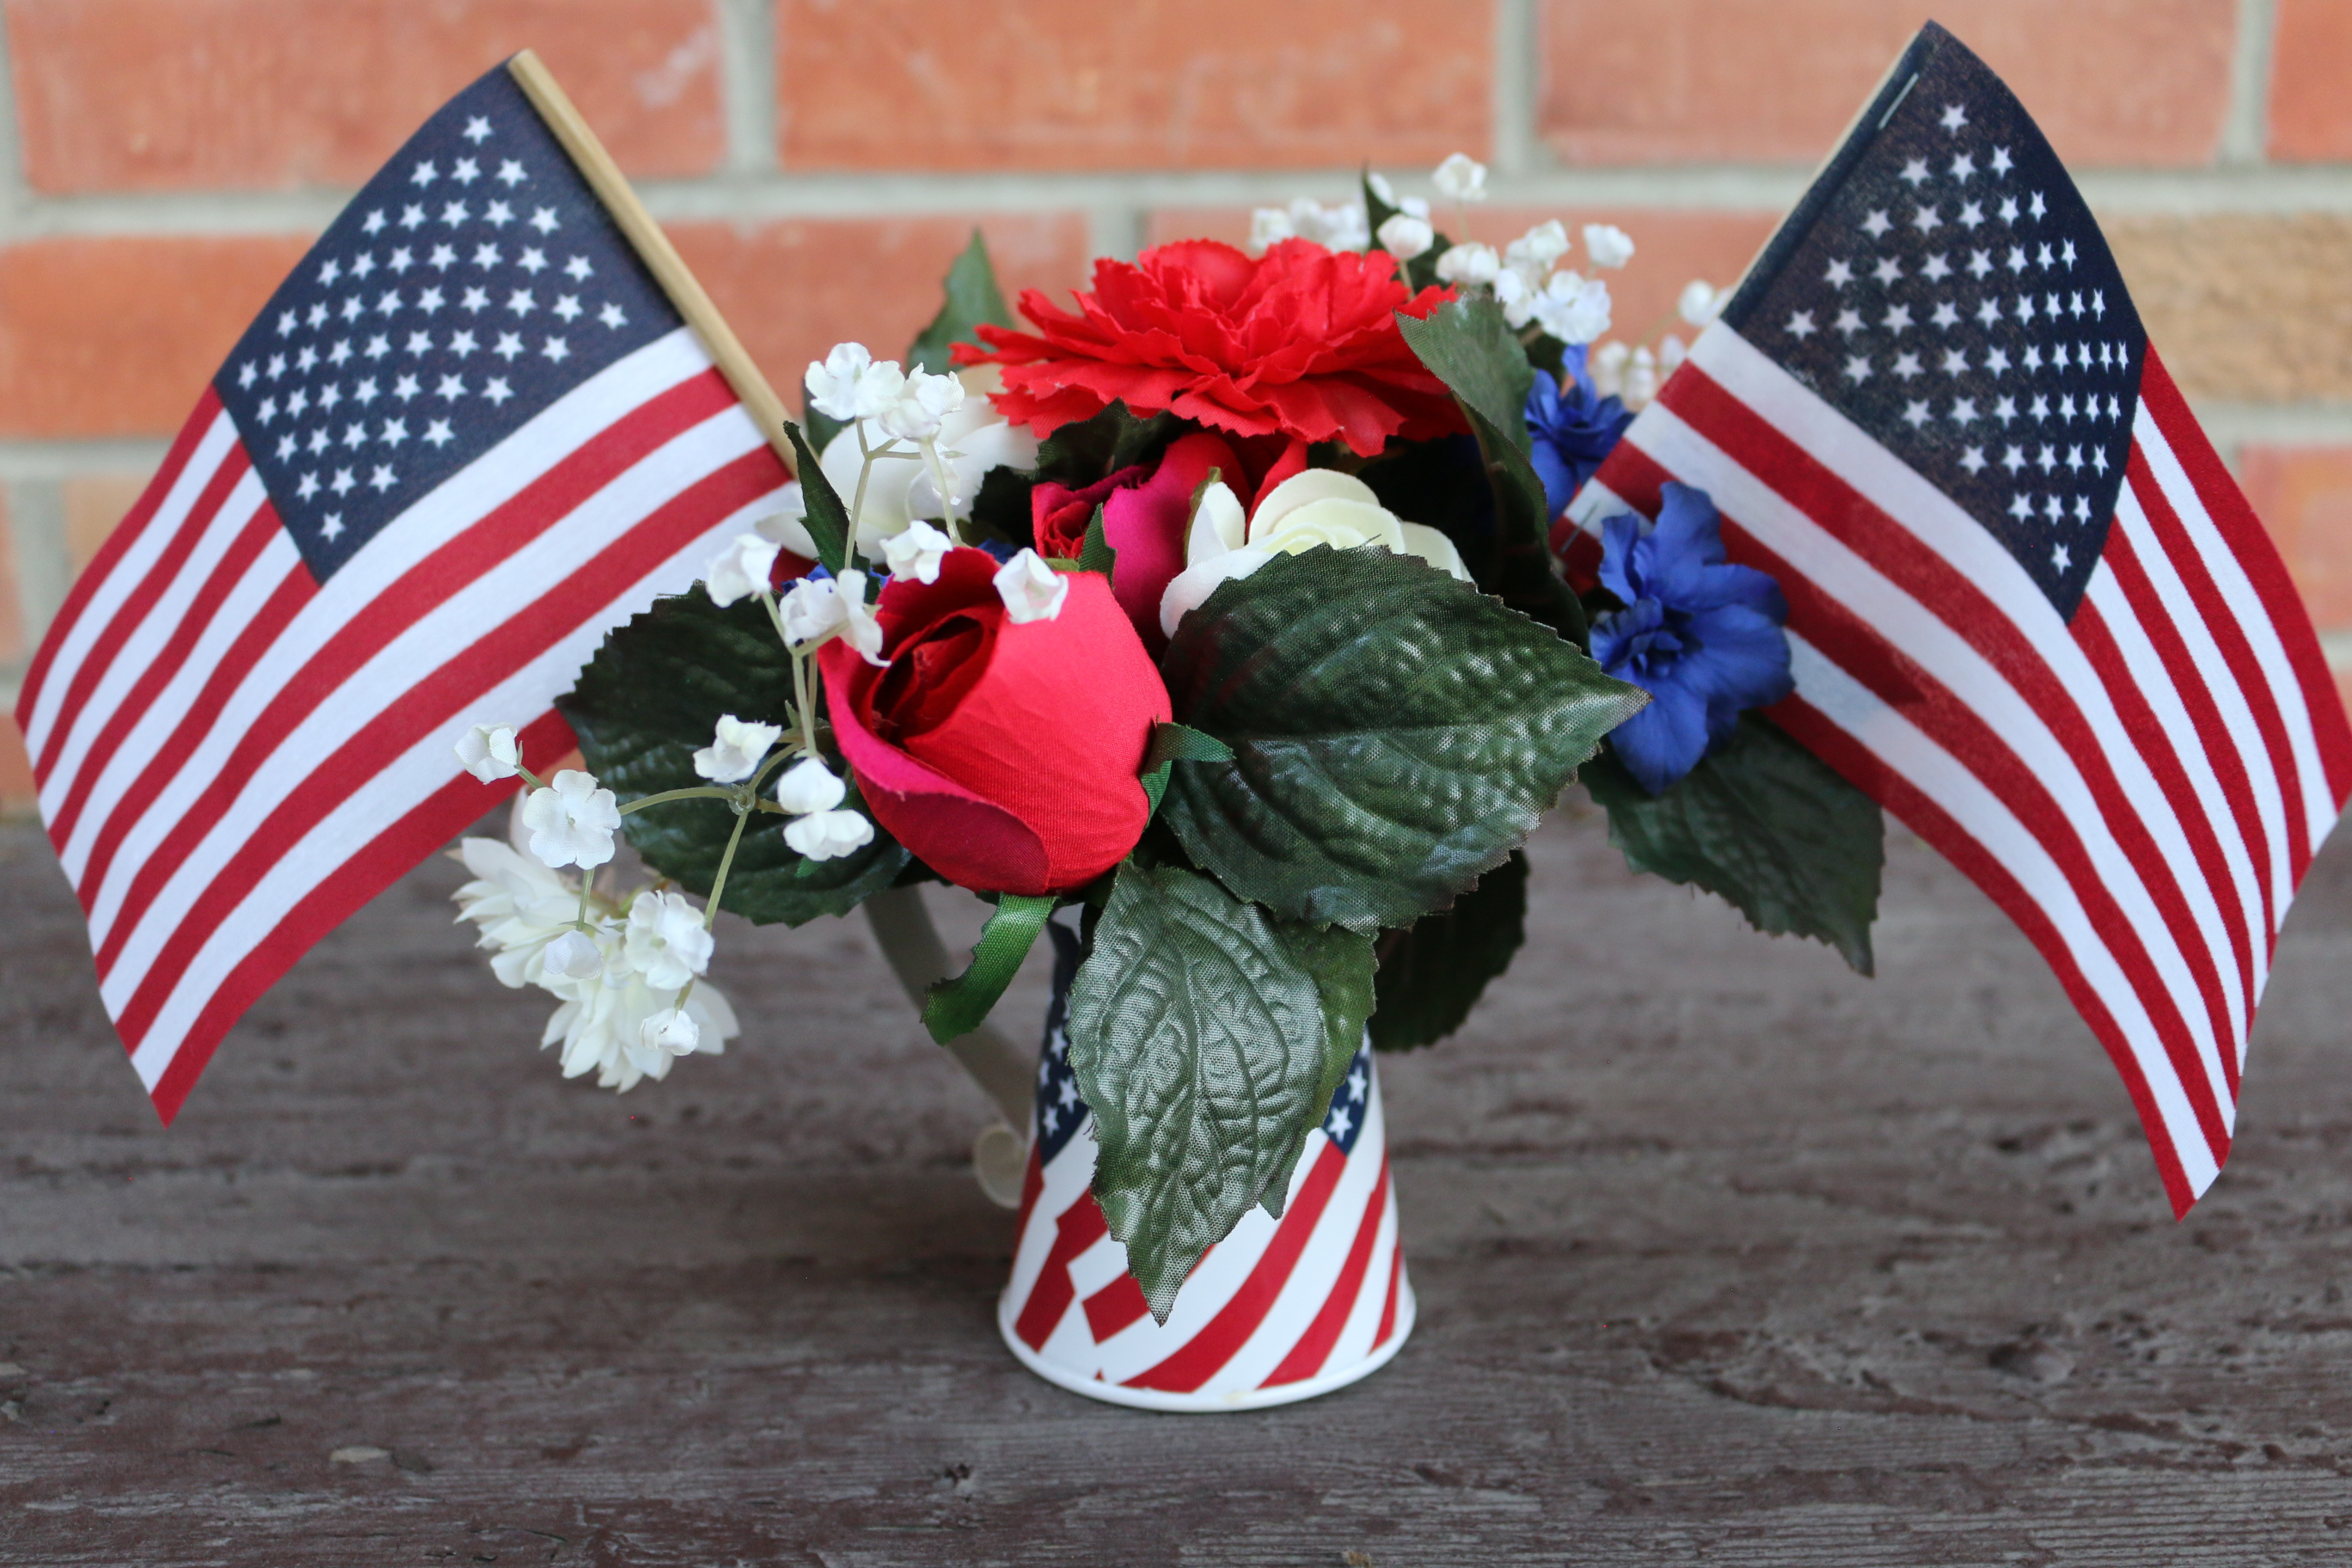 4th of July, 4th of July Prayer, Independence Day, Independence Day Prayer